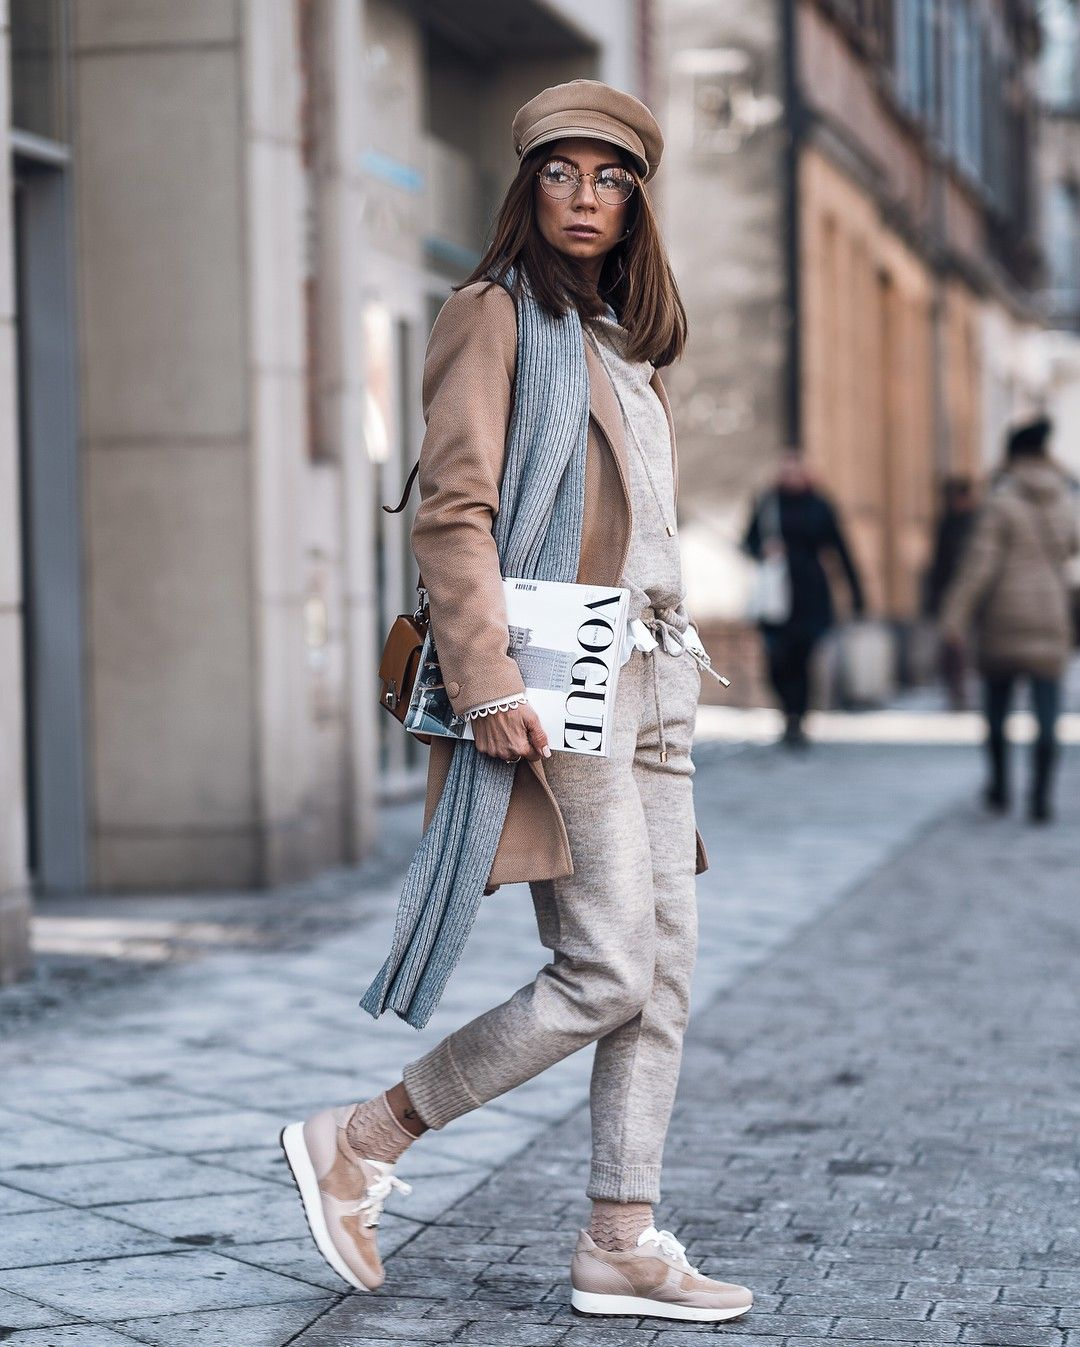 Hat Beret Sport Trousers Blue Scarf Glasses Street Casual Style Fashion Look Spring Summer 2018 It Girl Casual Fashion Fashion Fashion Clothes Women